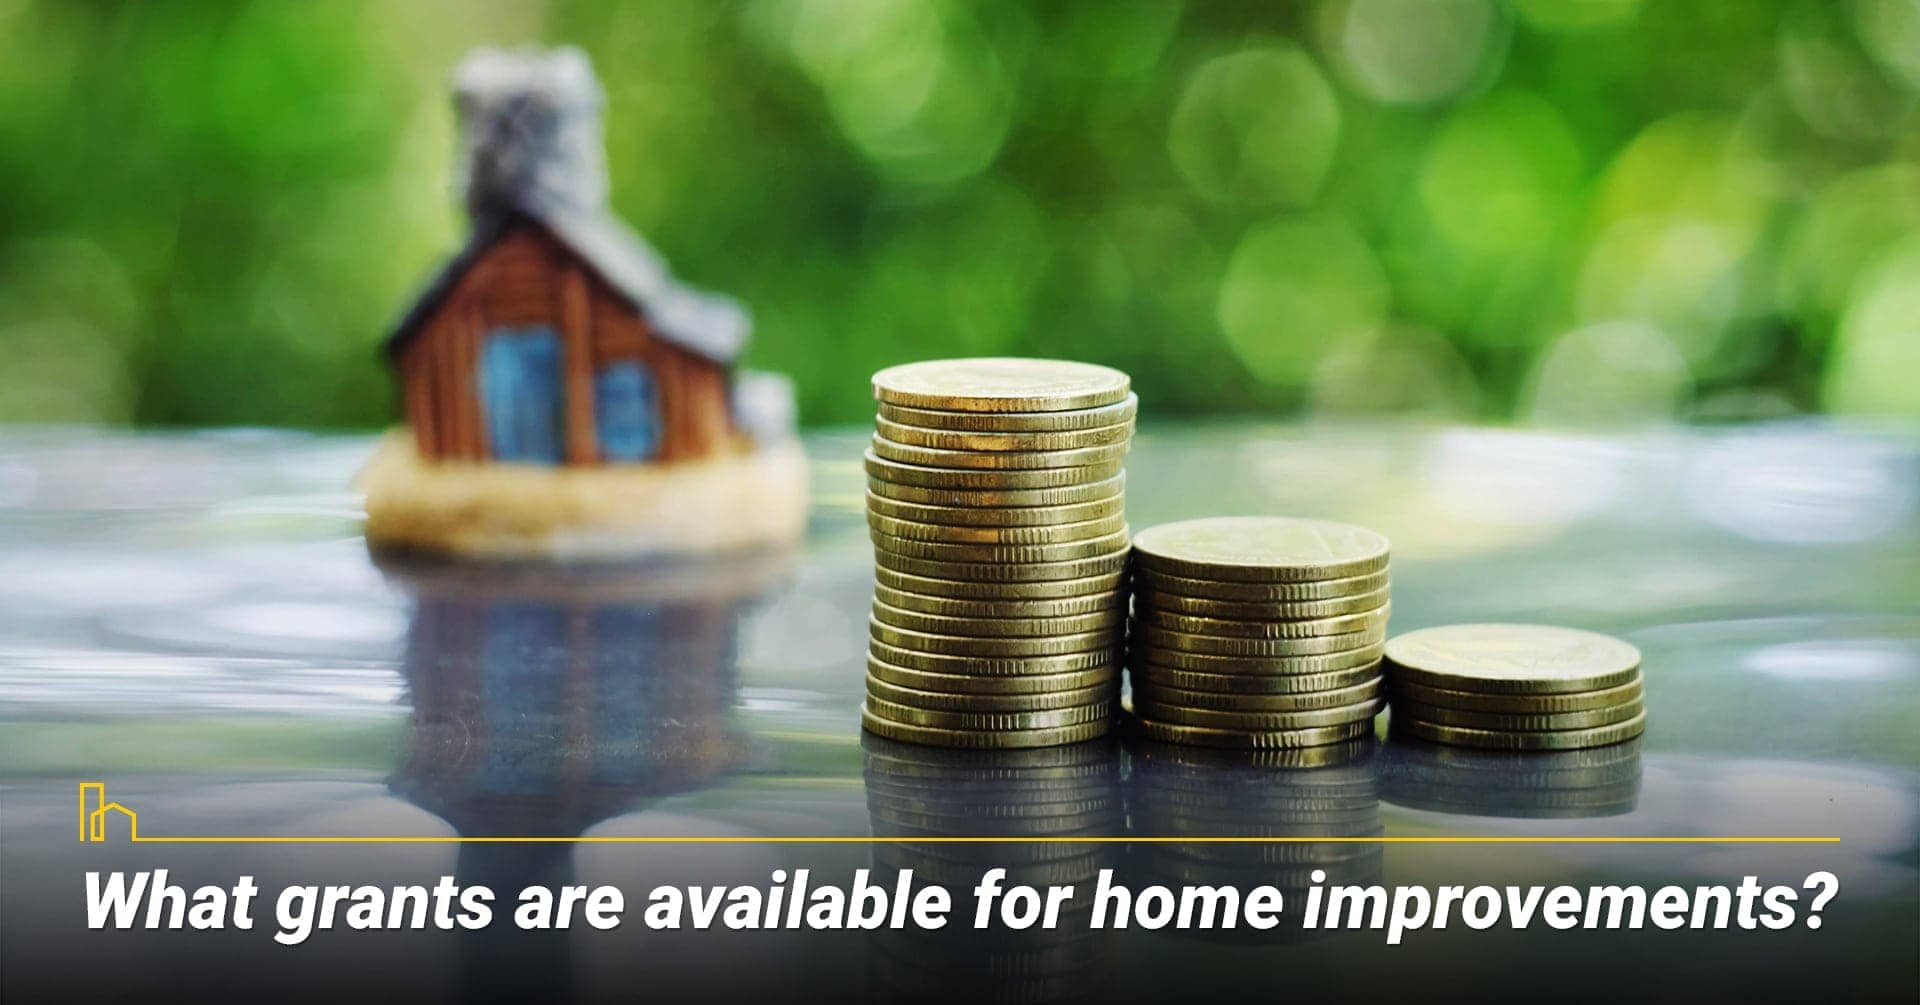 What grants are available for home improvements? financial assistance for home improvement projects